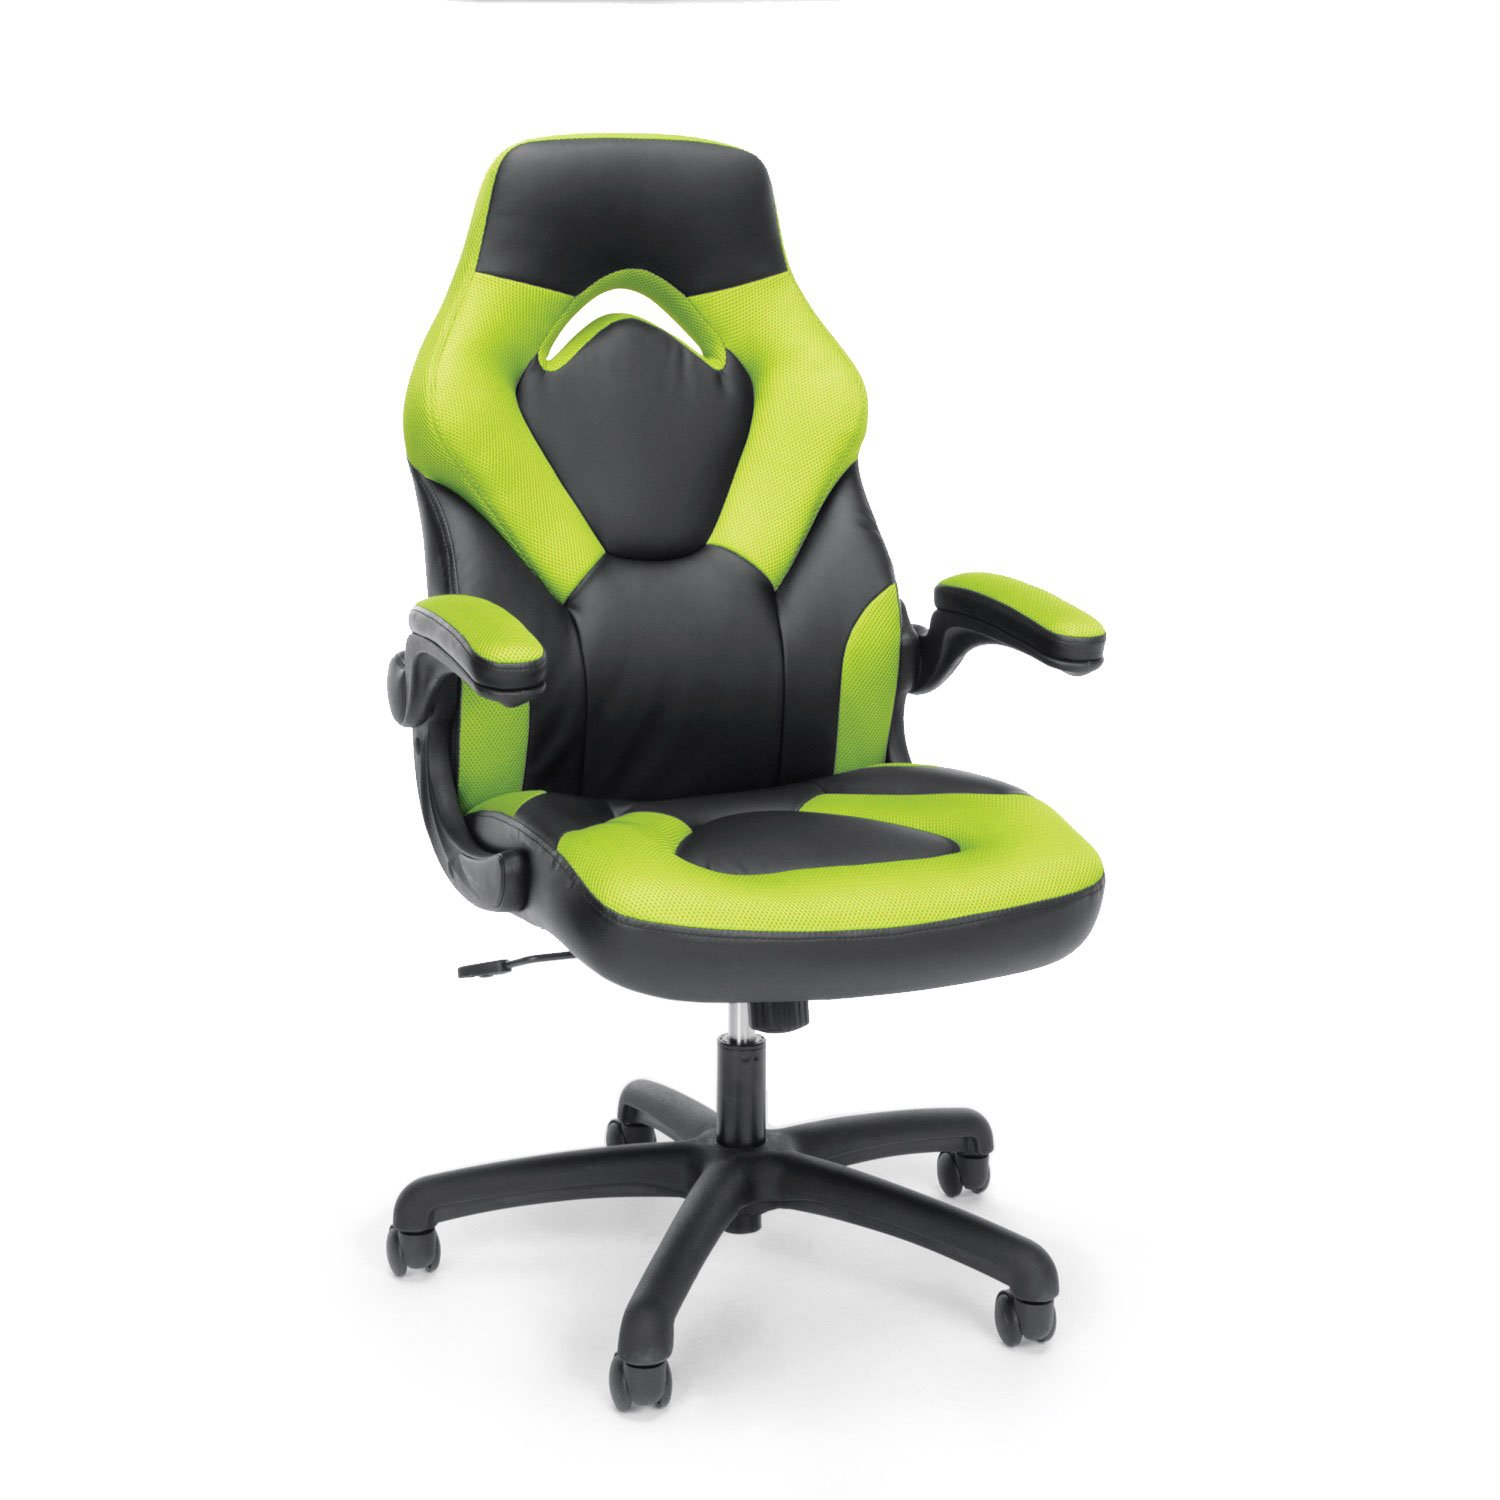 desk home ideas amazon design uk office chairs